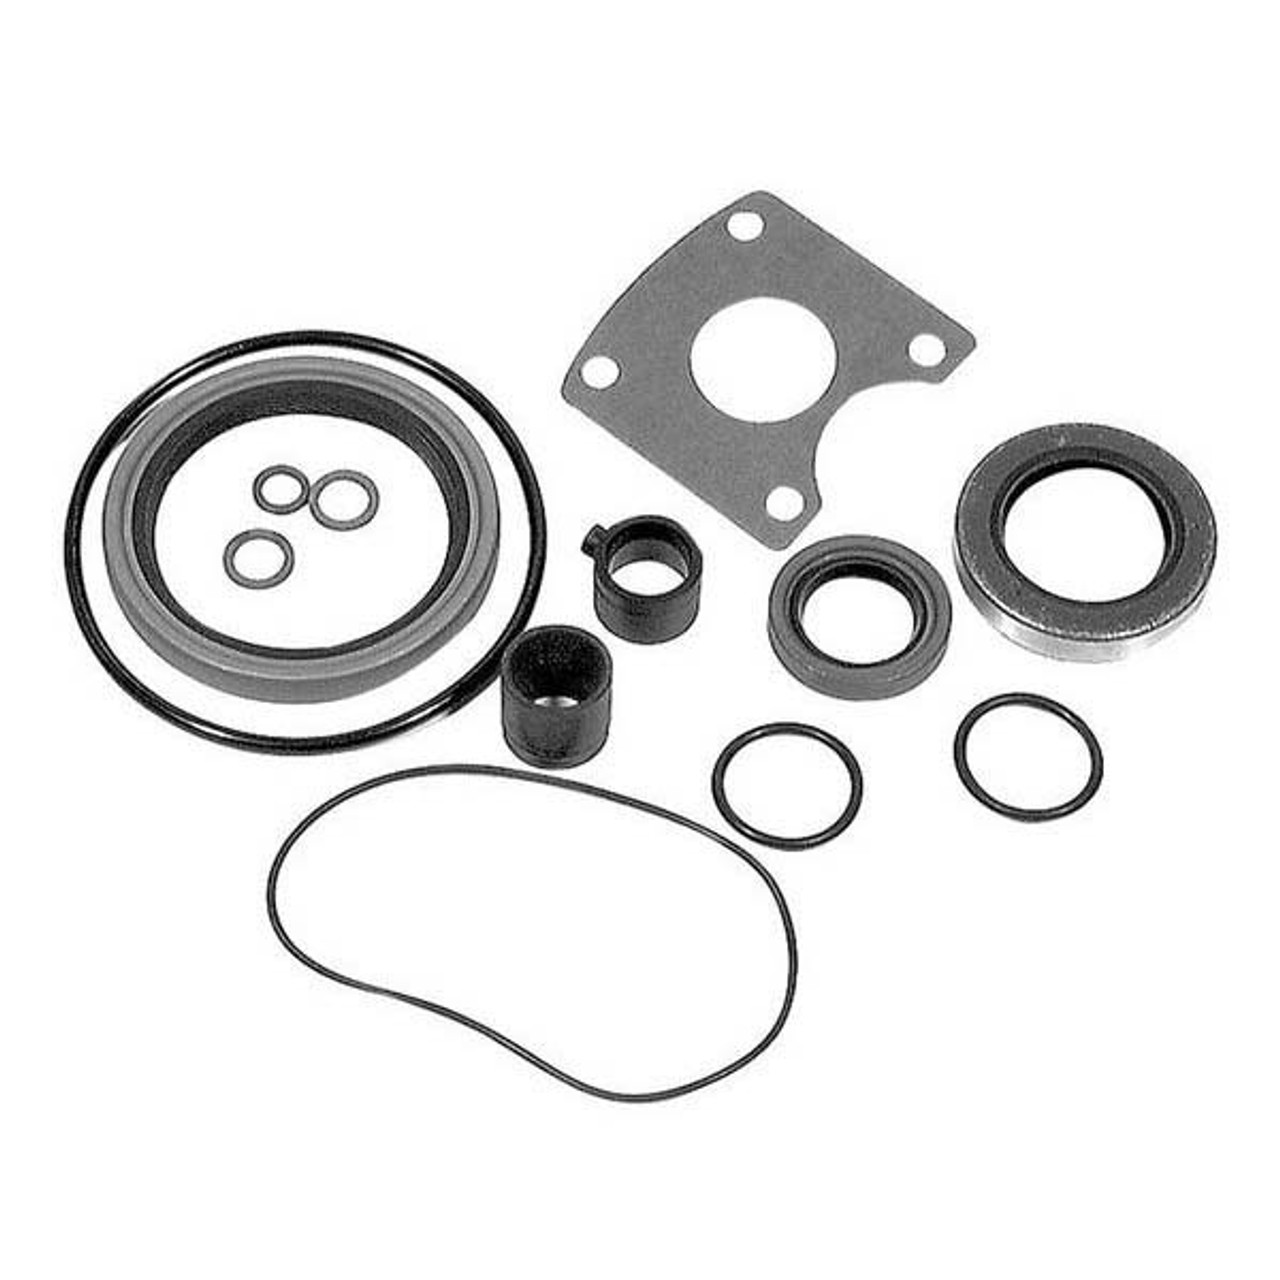 MerCruiser Upper Gear Housing Seal Kit 26-32511A1-18-2648